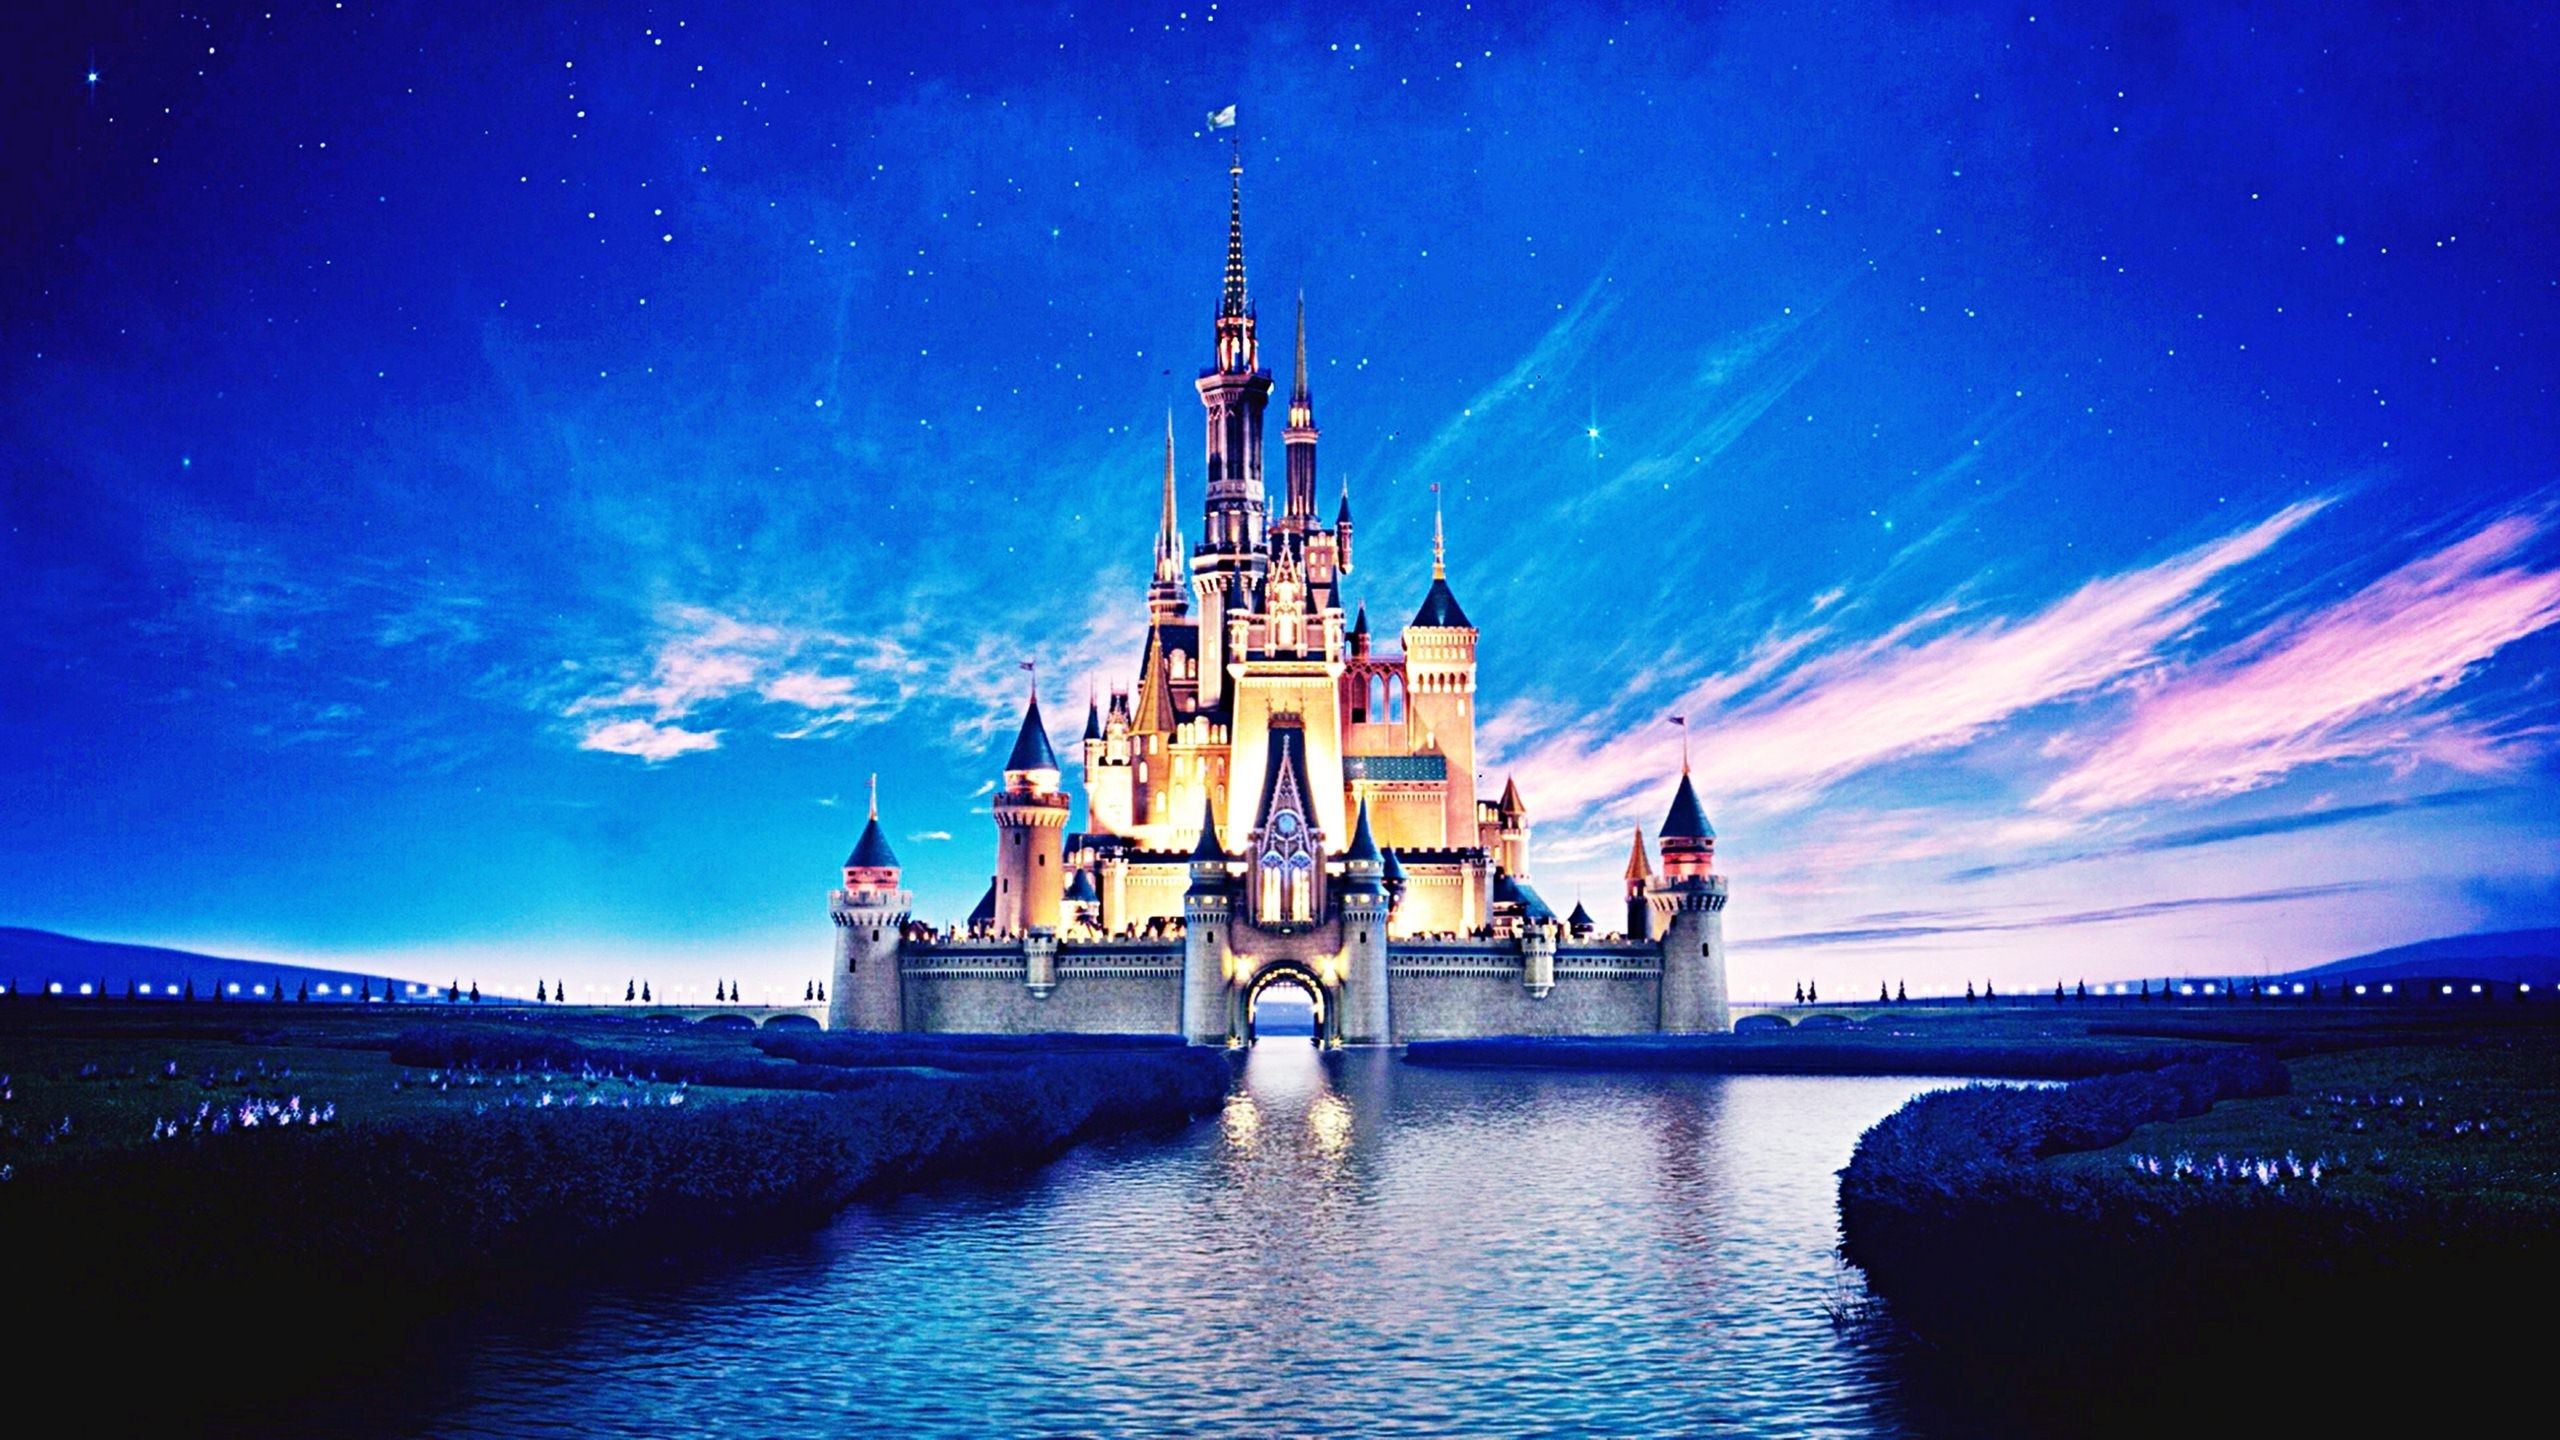 Disney Castle Wallpapers HD 2560x1440